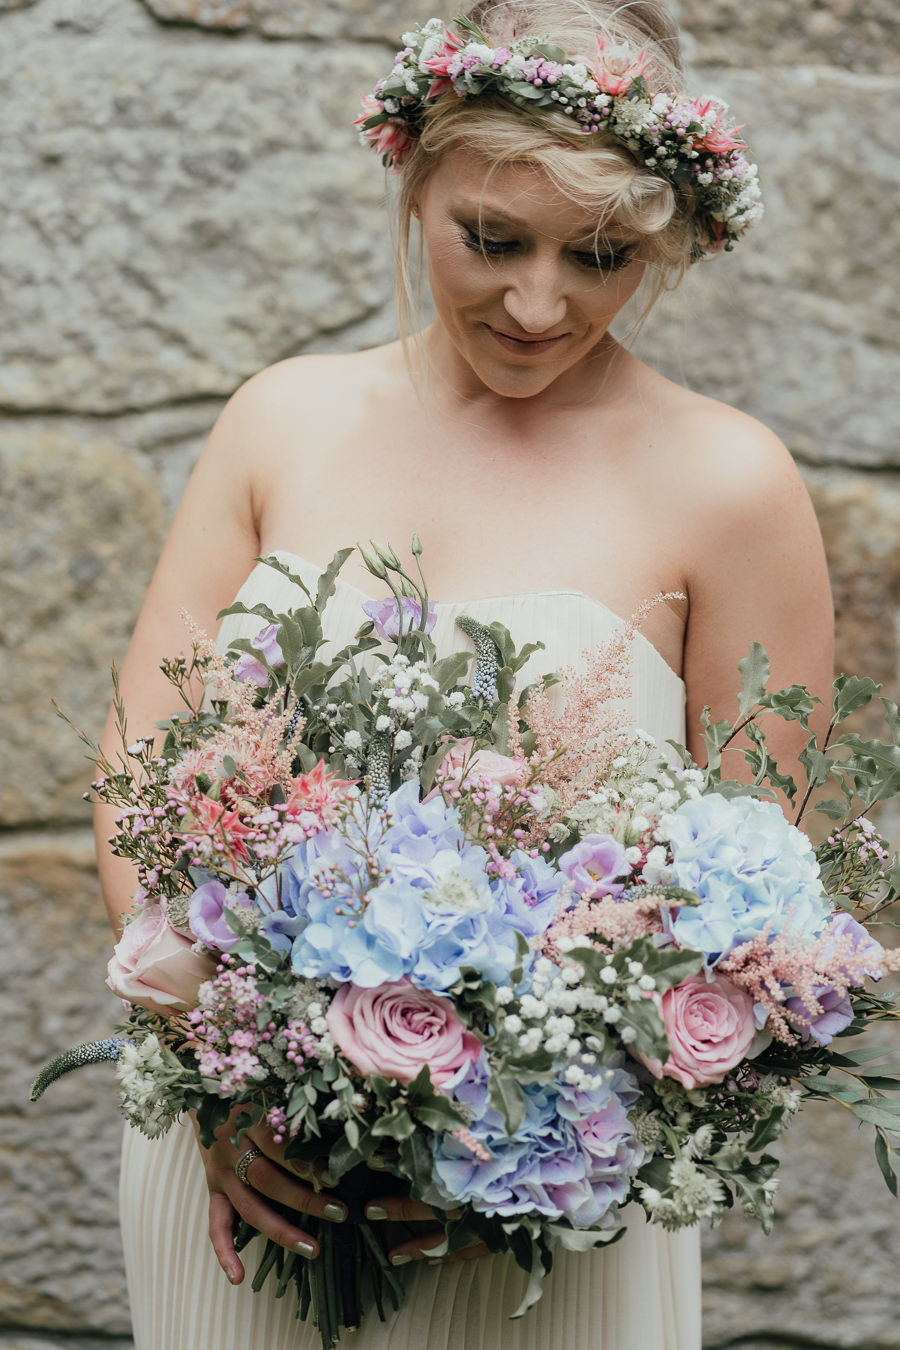 Rural English wedding style at Danby Castle, photo credit Rosanna Lilly Photography (3)